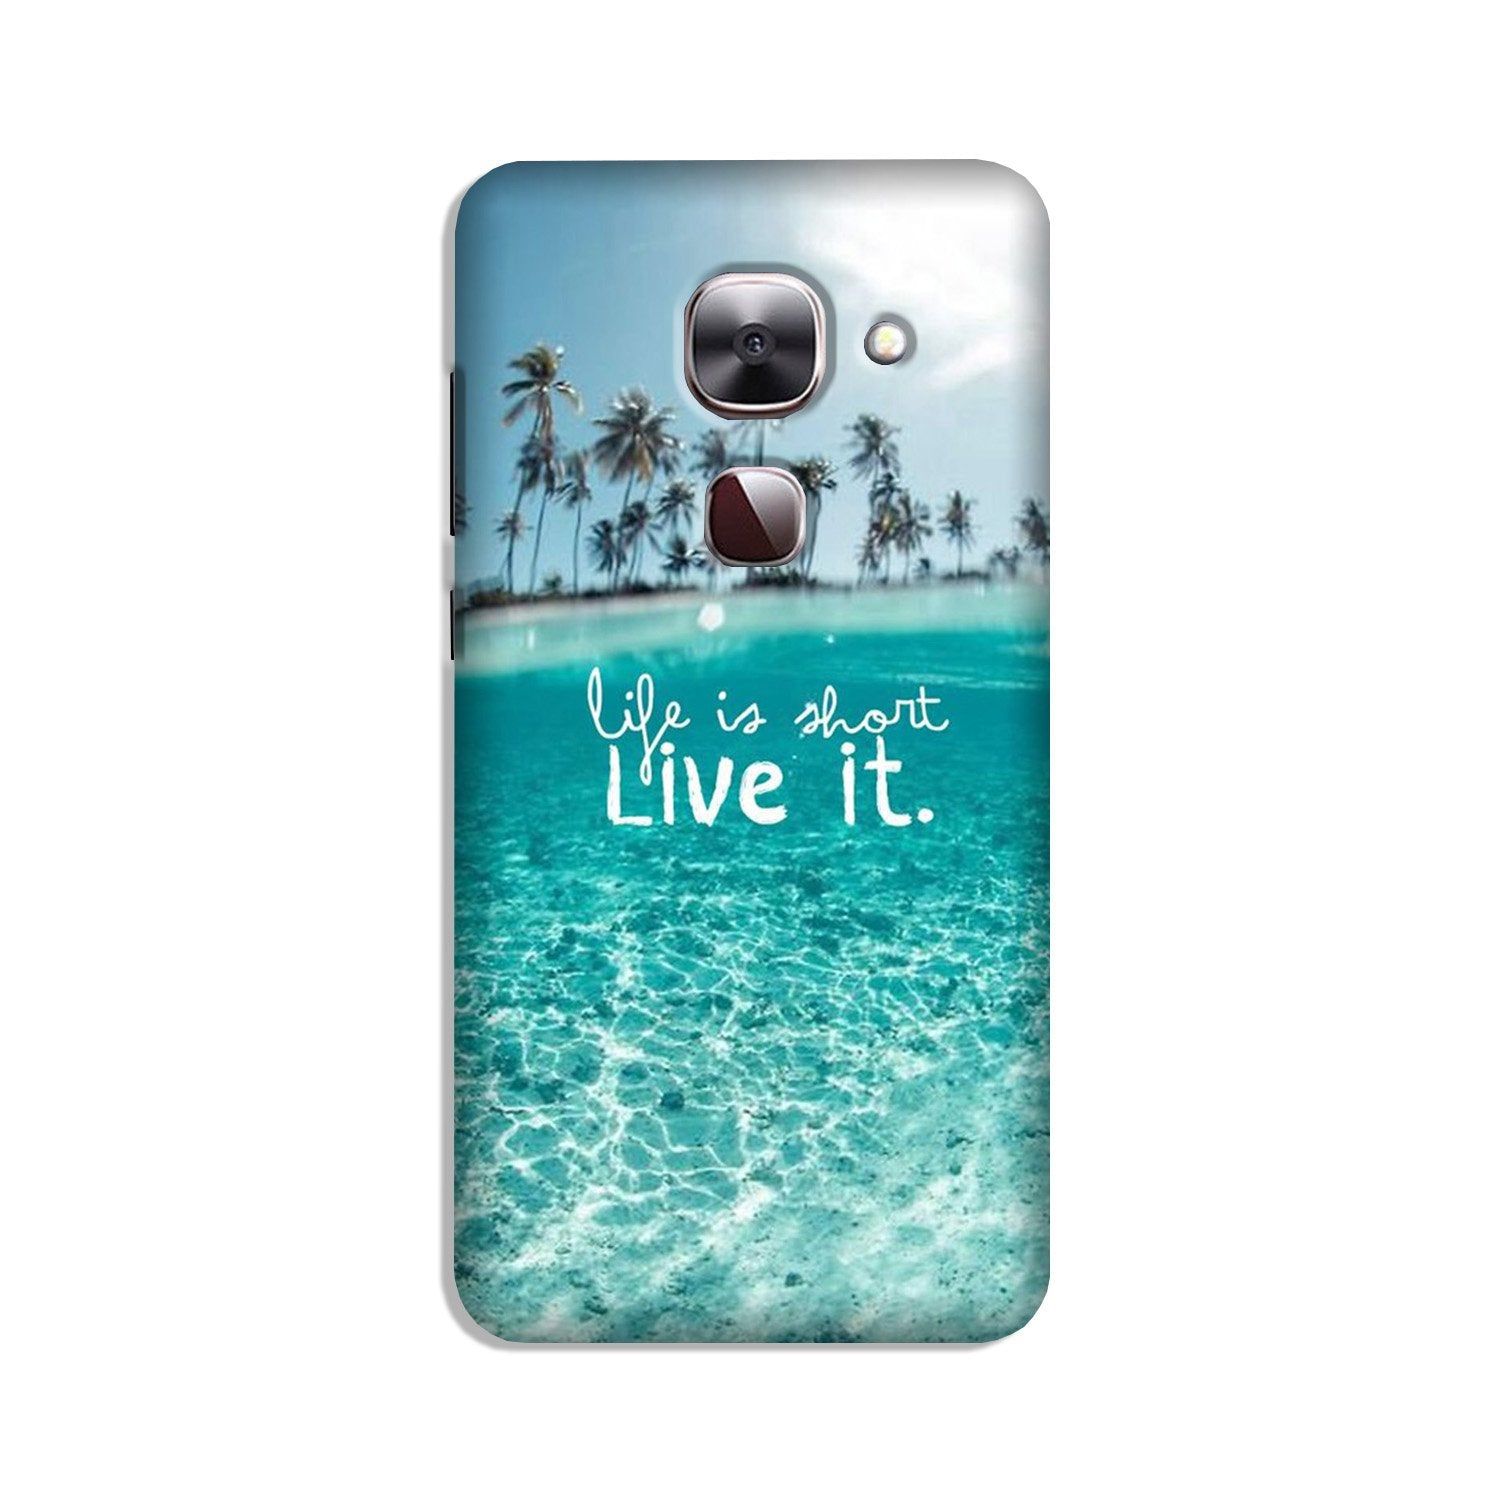 Life is short live it Case for LeEco le 2s